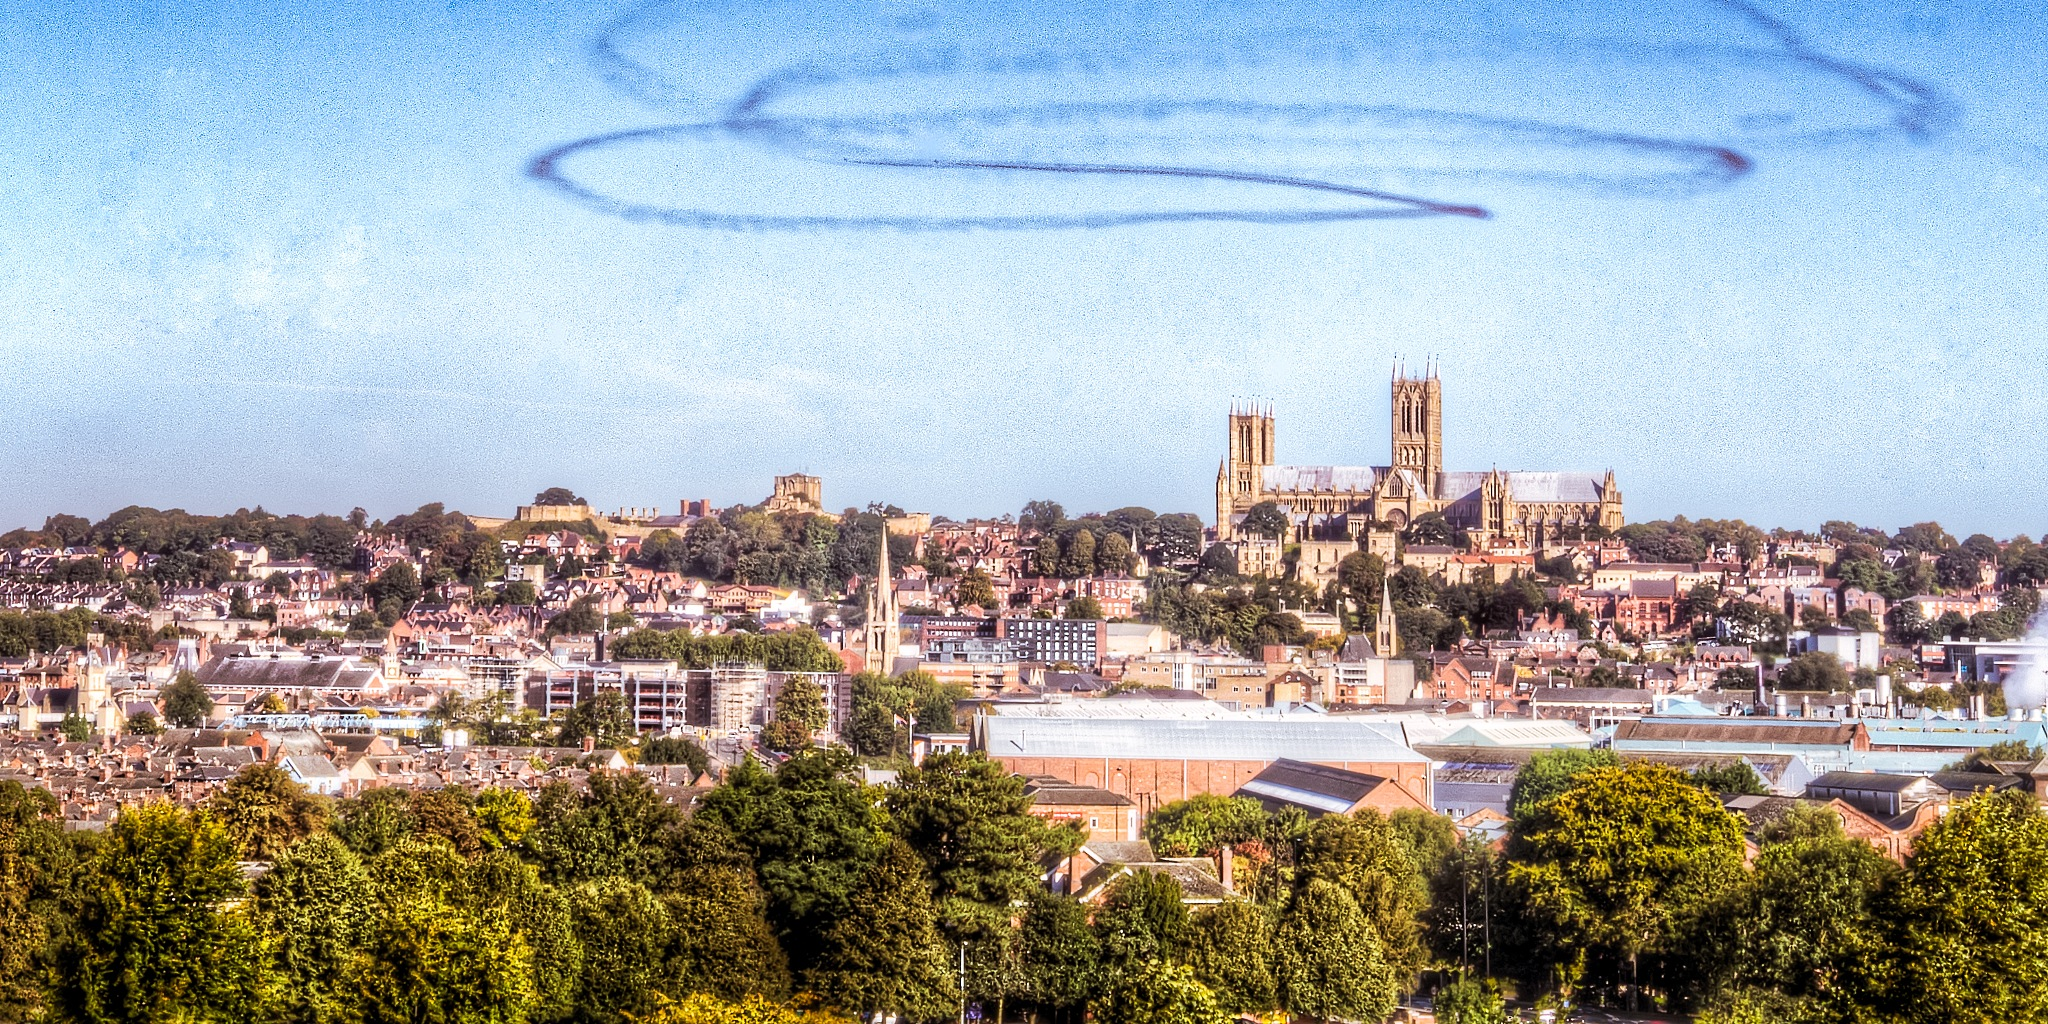 The City of Lincoln by kevin.wood.359126